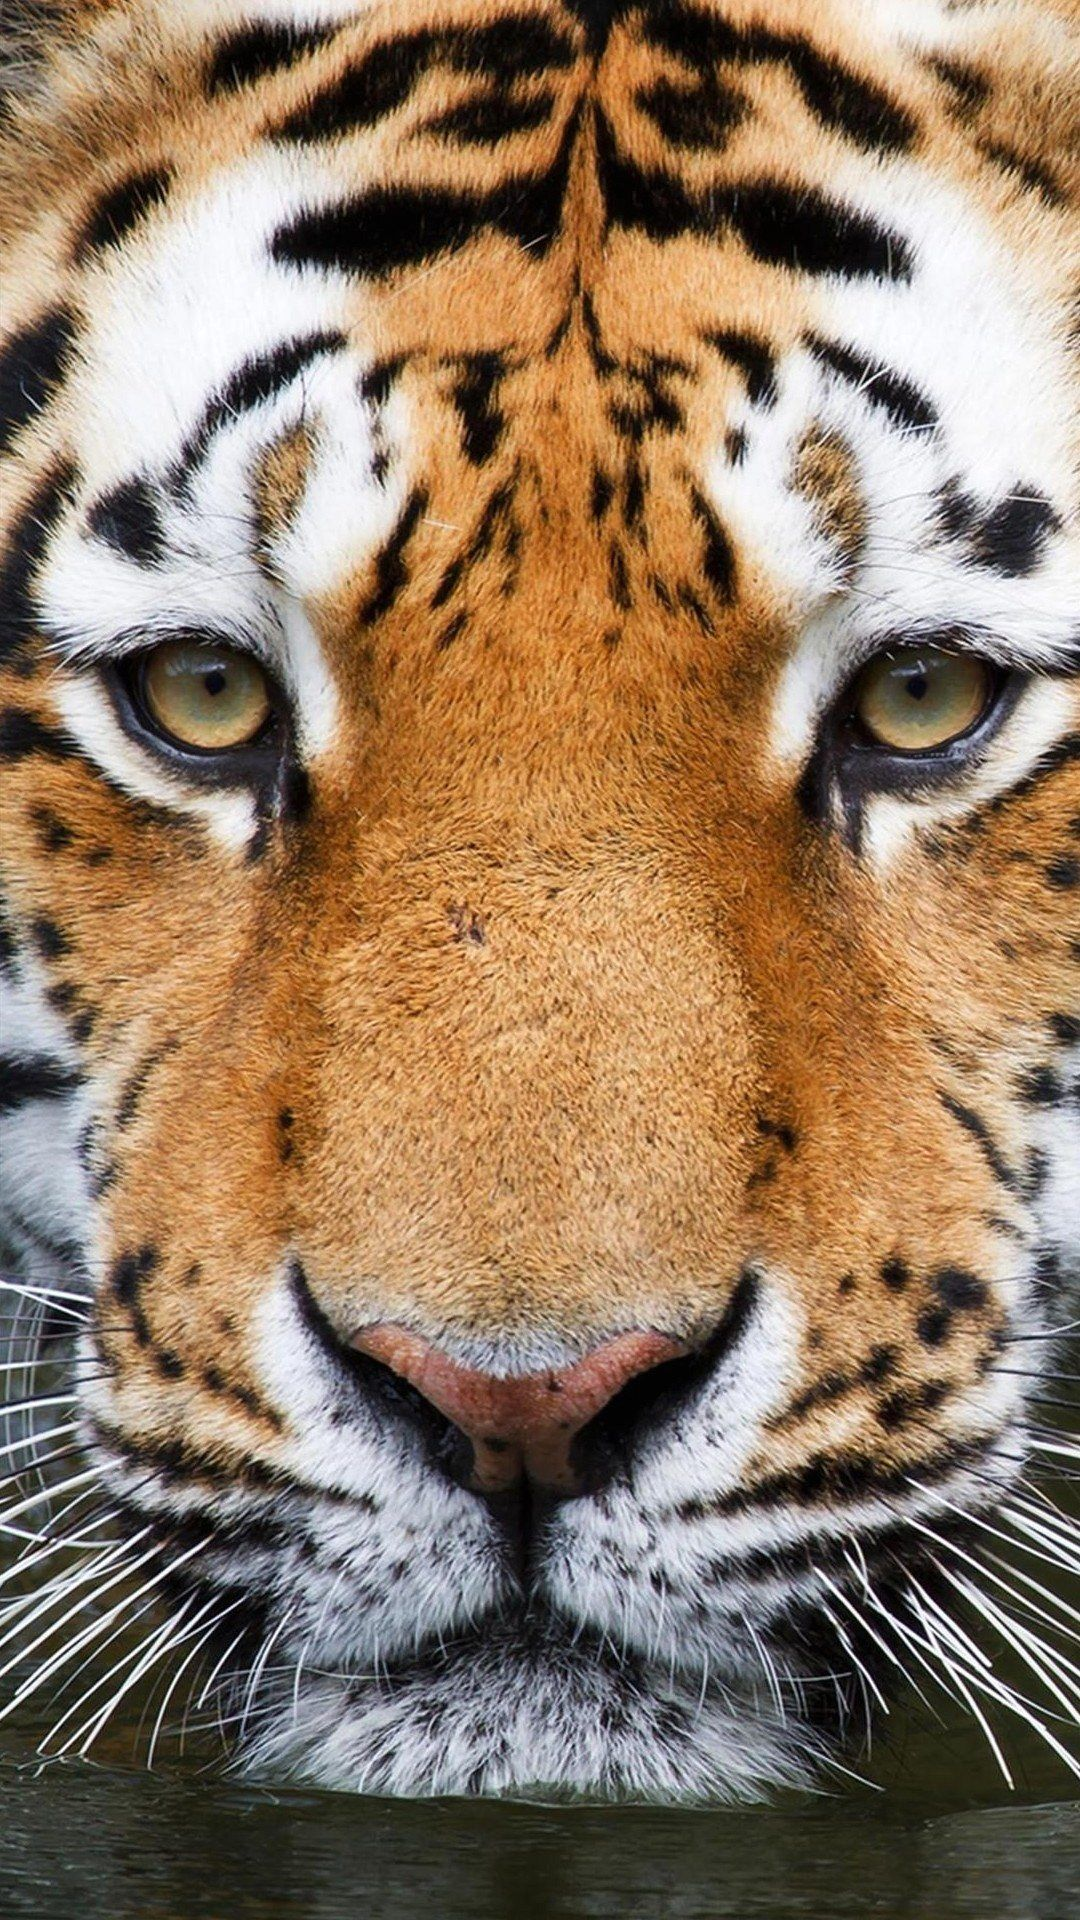 Tiger eyes Best htc one wallpapers, free and easy to